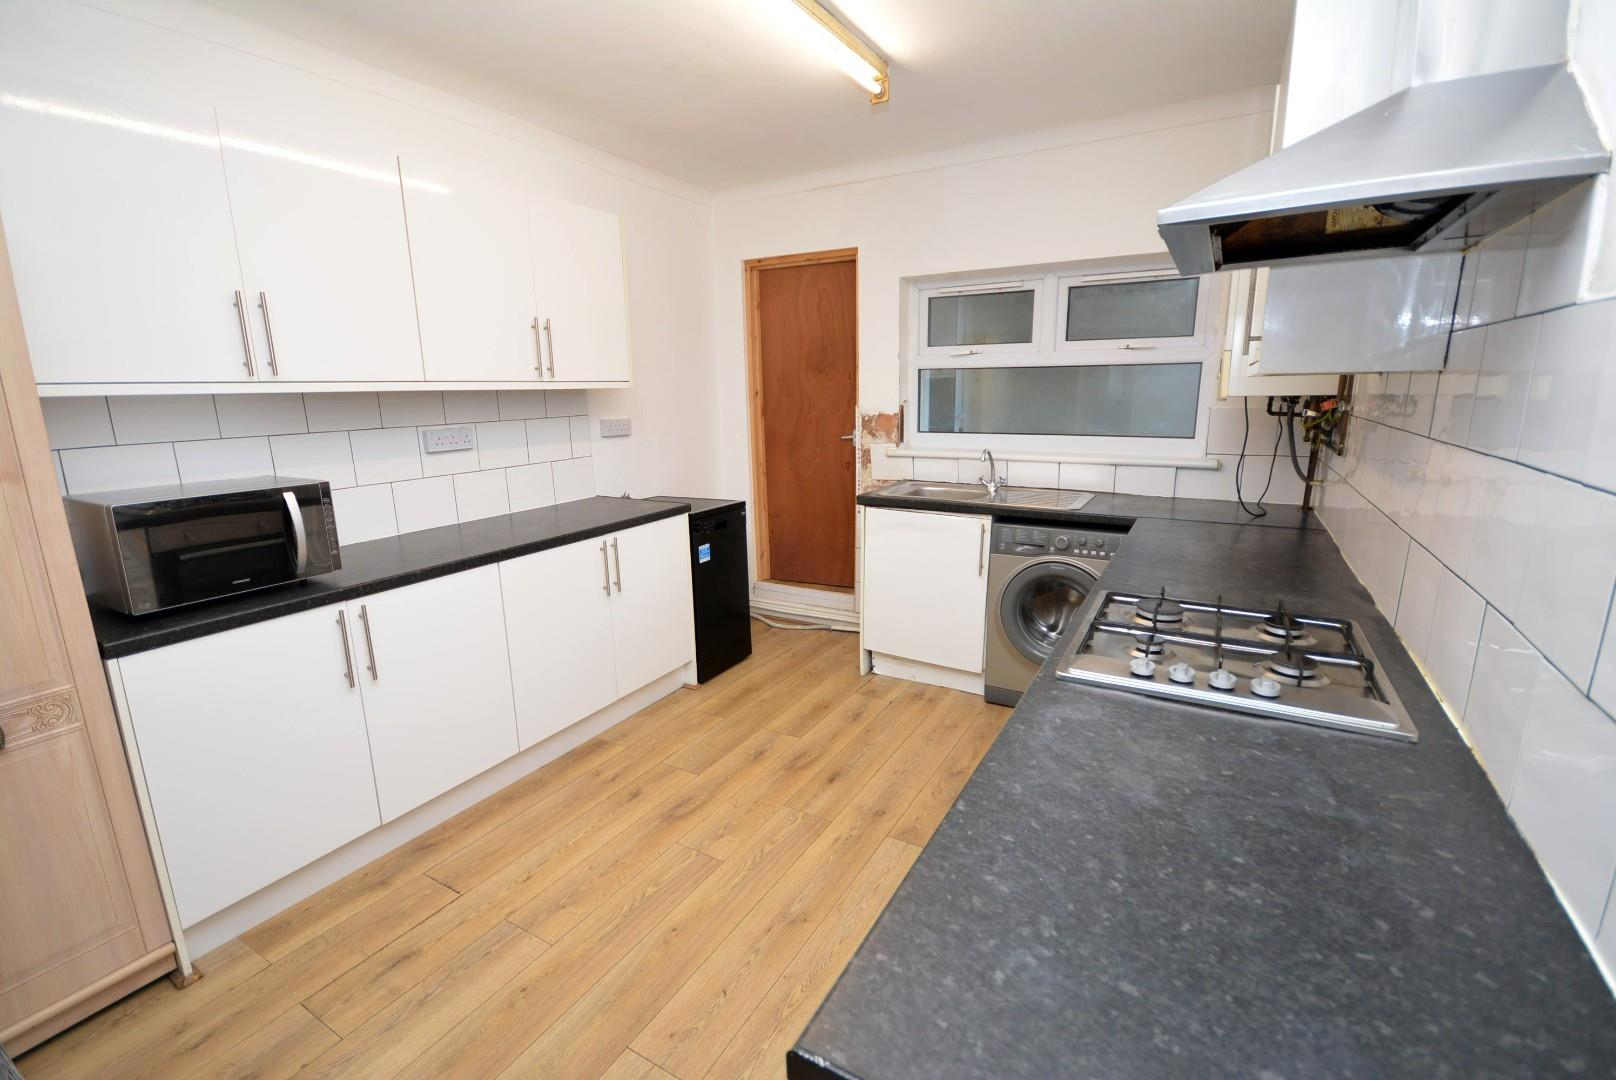 6 bed terraced house for sale in Tewkesbury Street, Cardiff, CF24